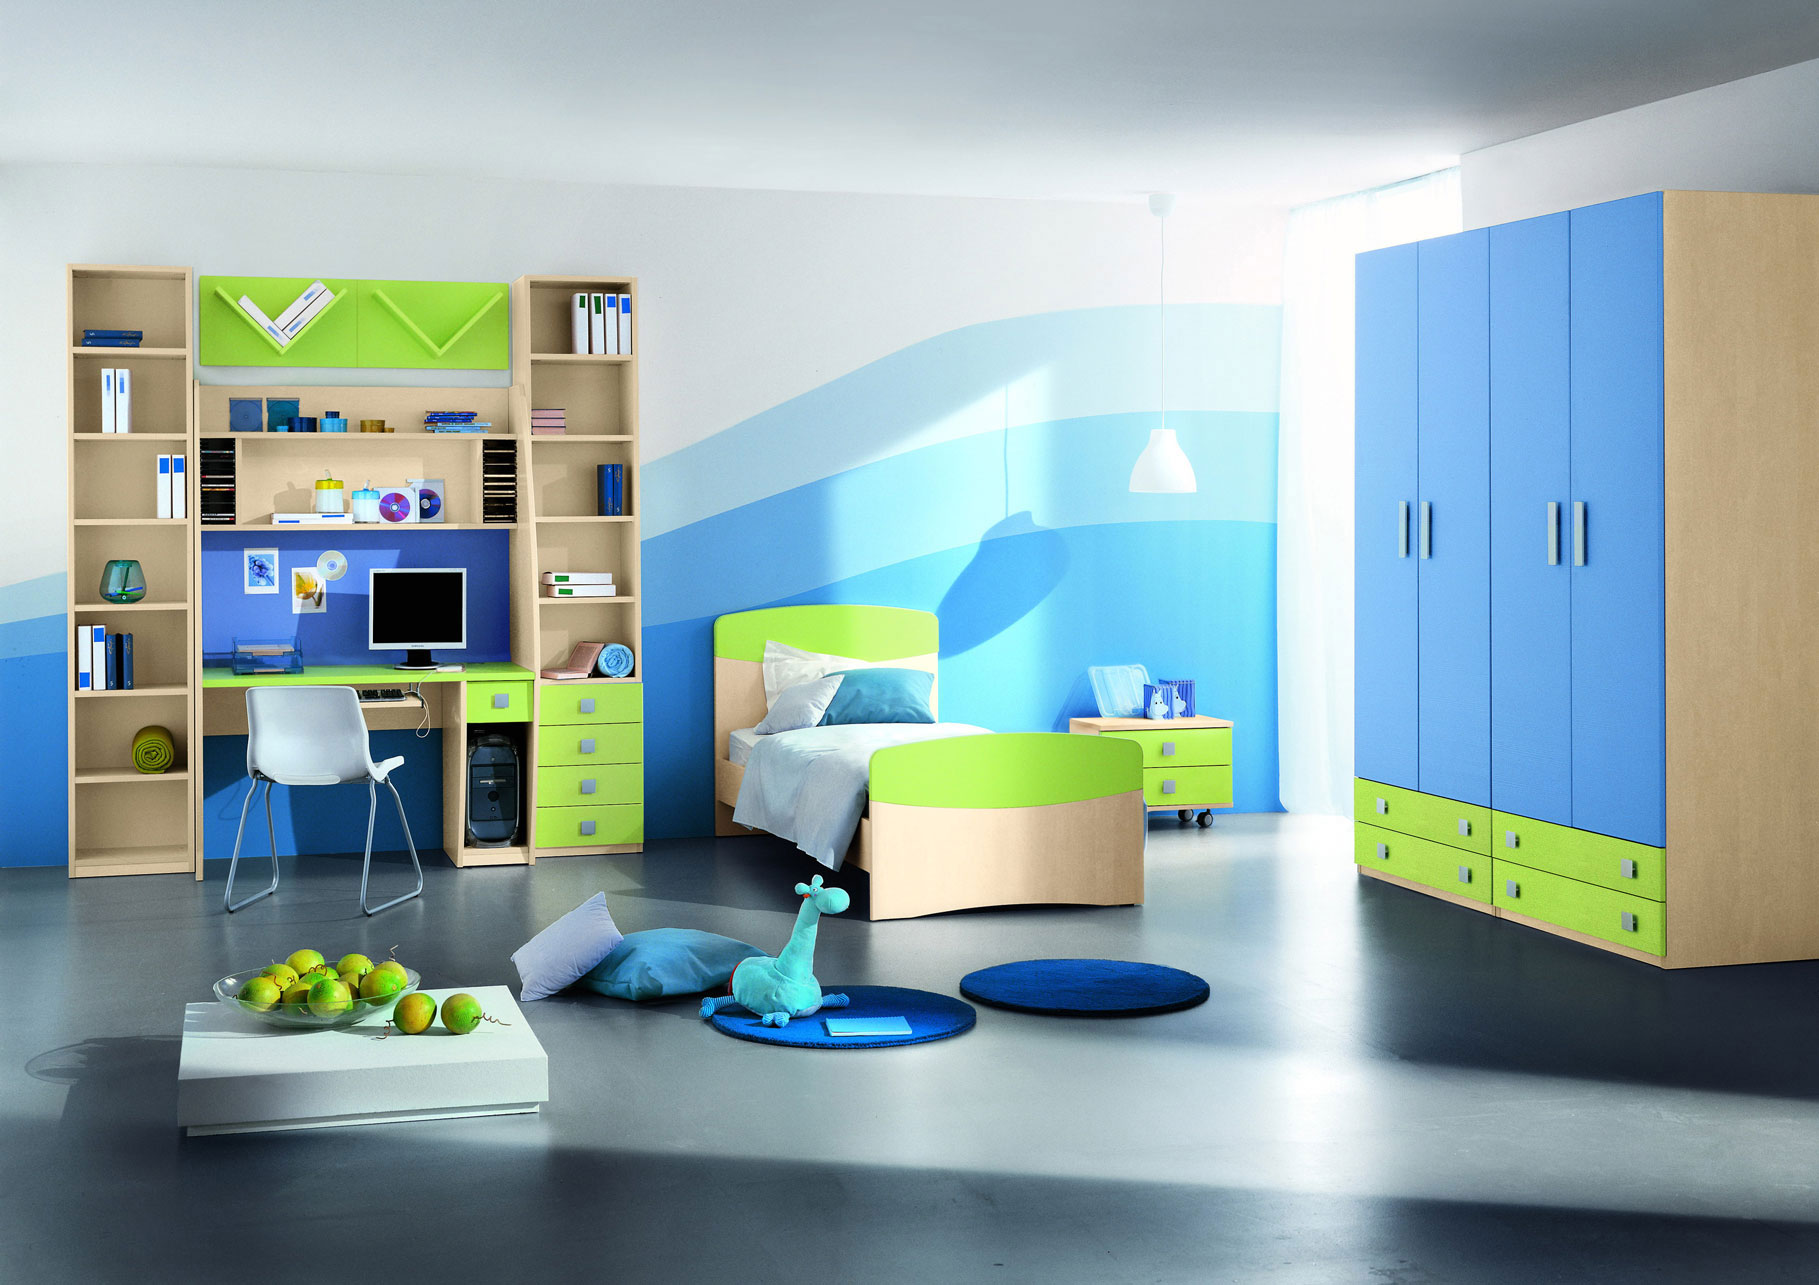 http://mydecorative.com/wp-content/uploads/2013/02/Cool-Kids-Room-Designs-From-Akossta-4.jpg